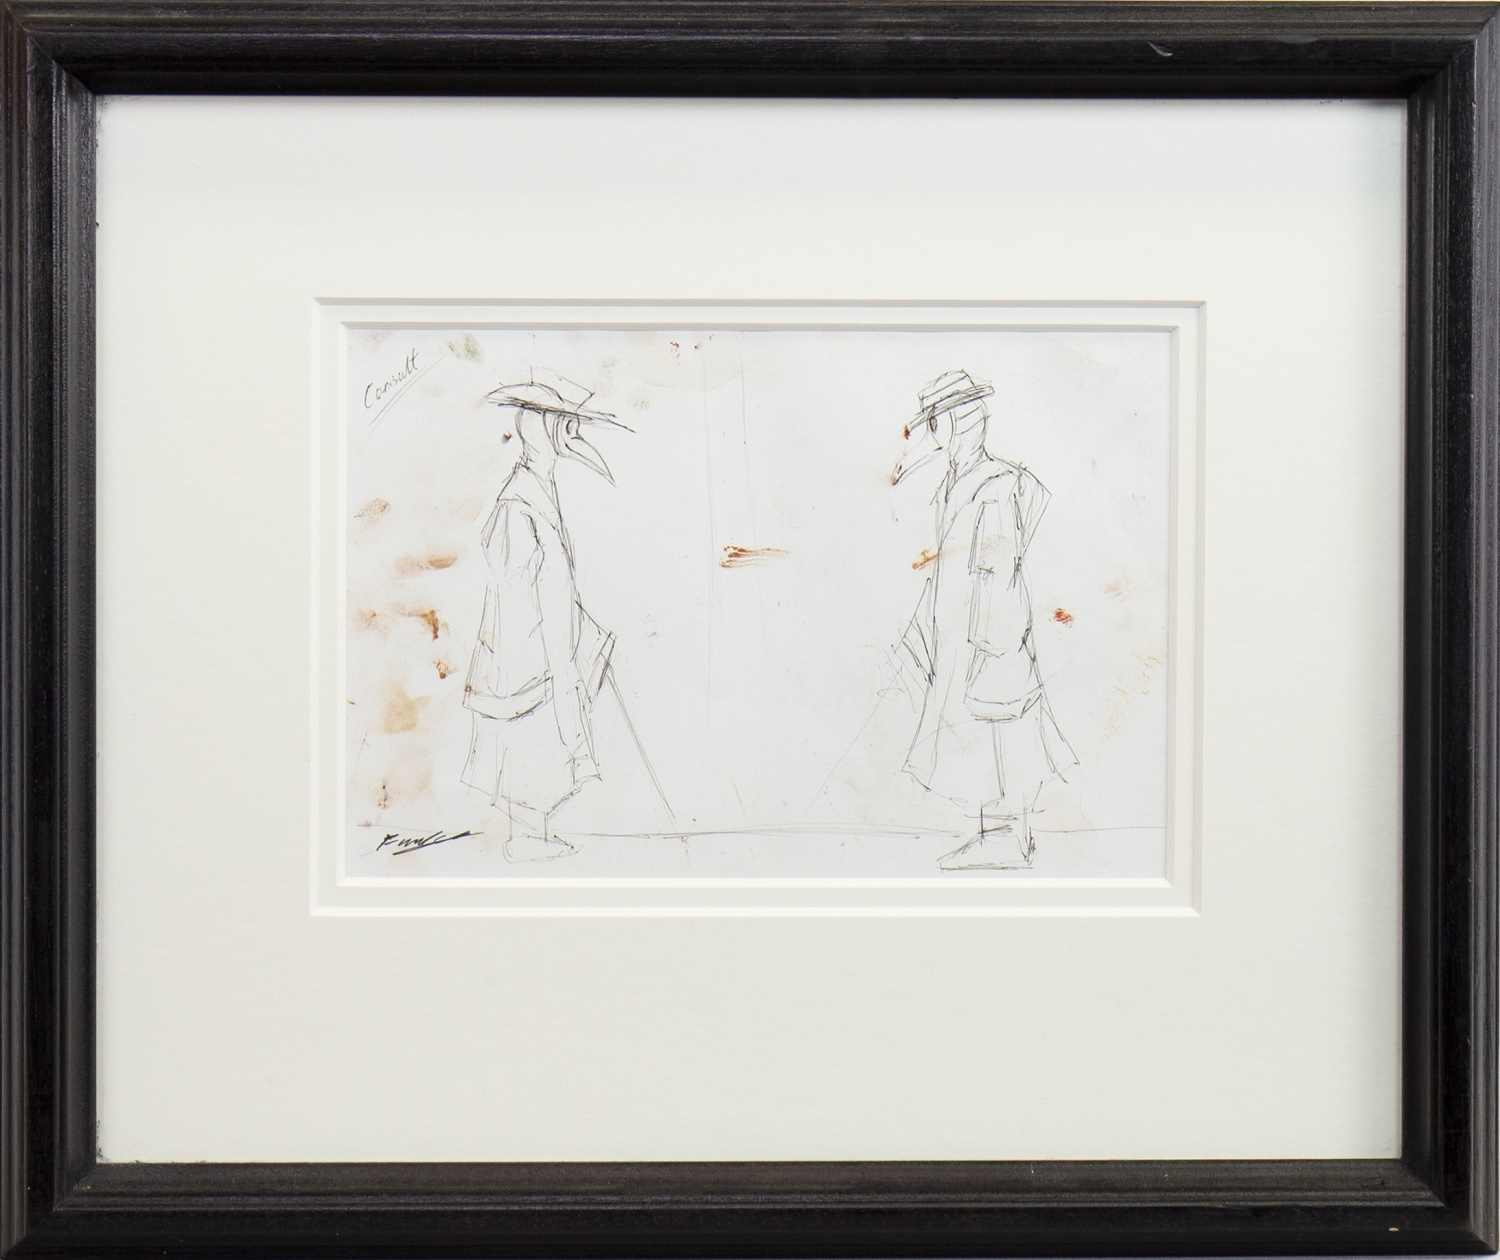 THE CONSULTATION, A PENCIL SKETCH BY FRANK TO